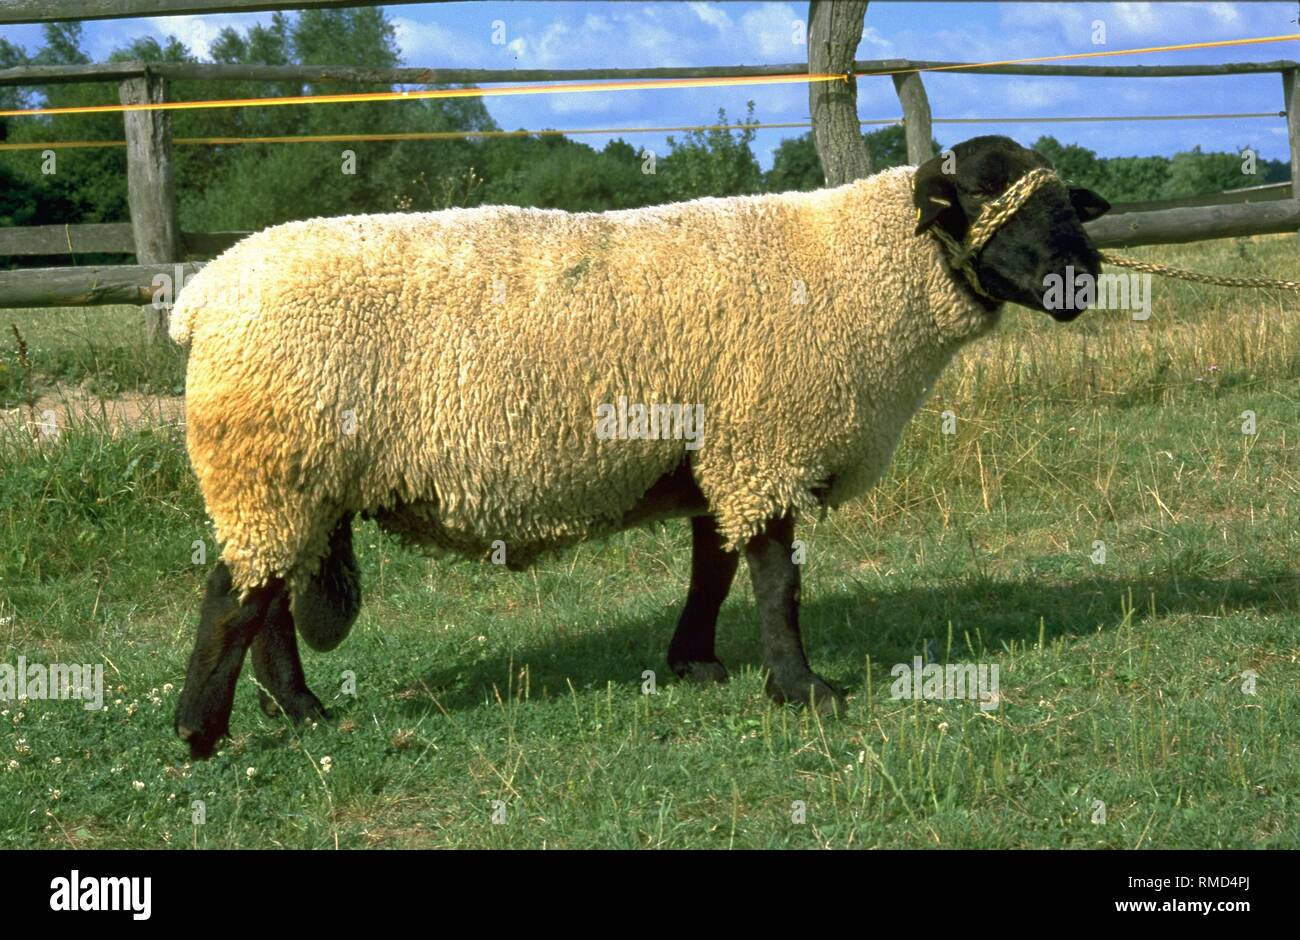 Muscled Sheep Stock Photos Muscled Sheep Stock Images Alamy